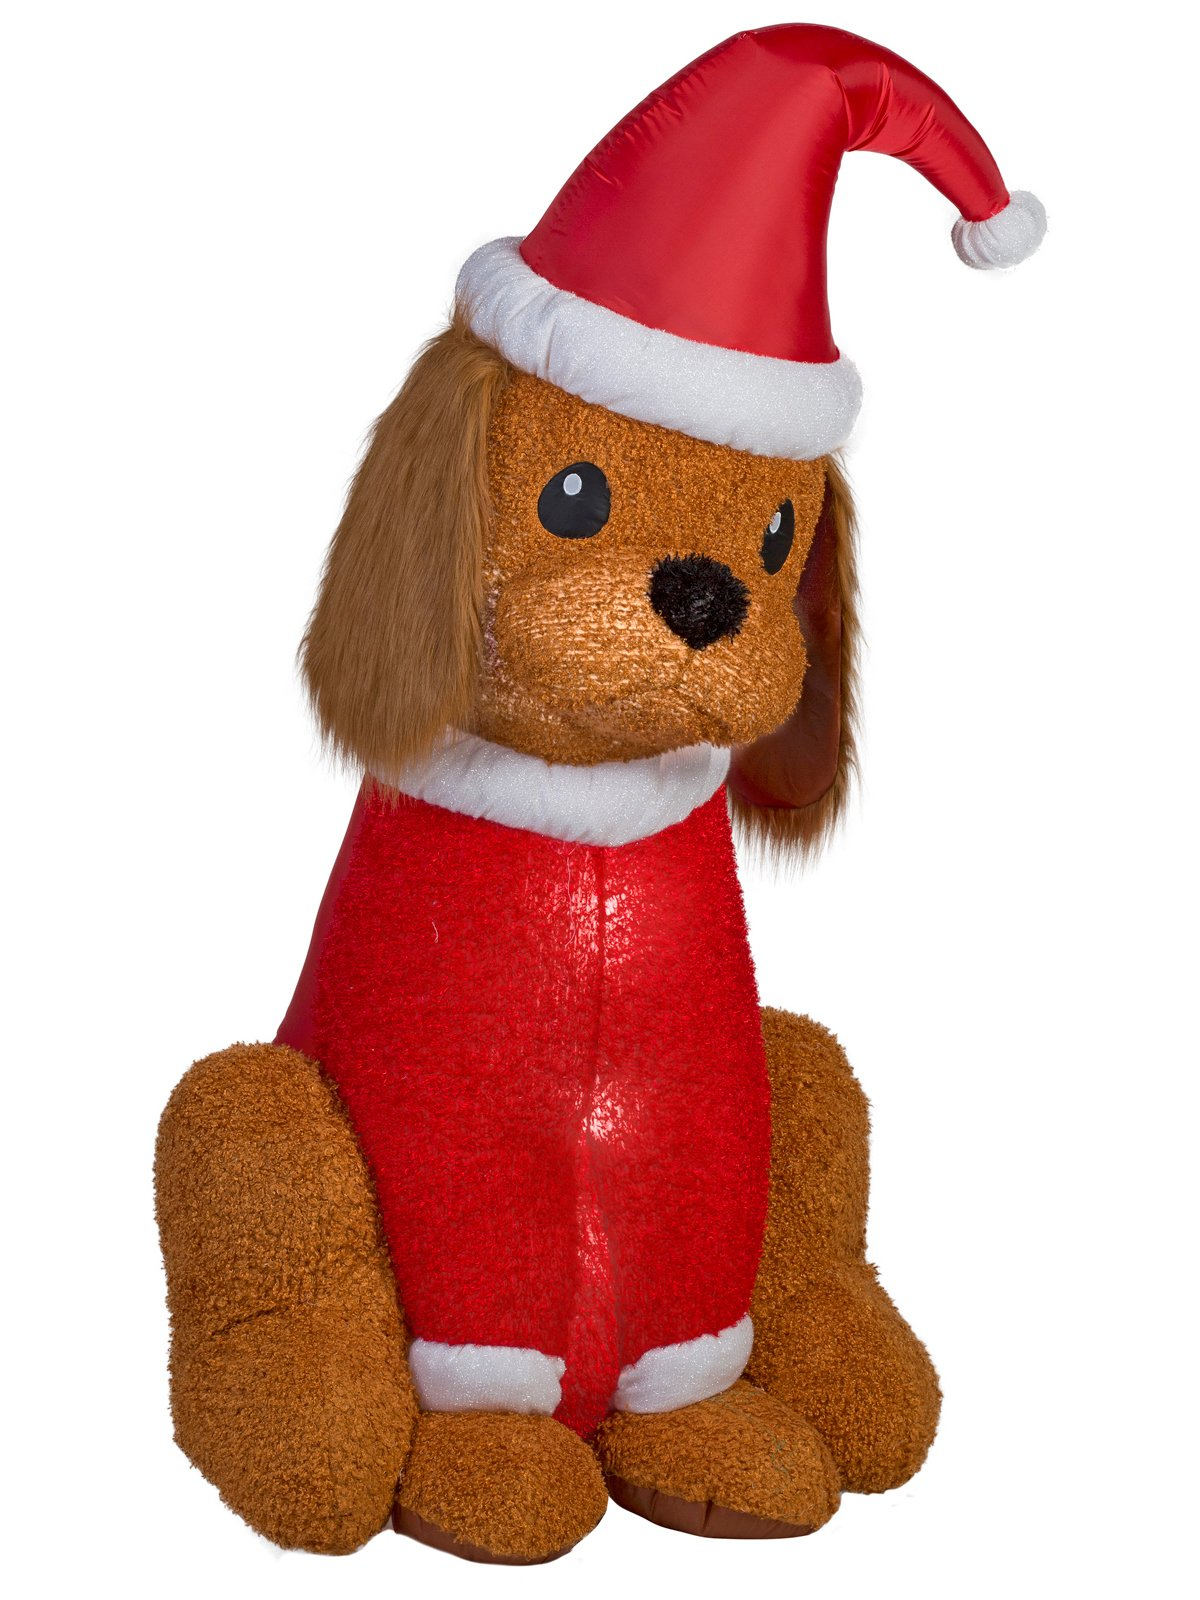 Home Accents Holiday Inflatable Cocker Spaniel with Santa Hat, 6-Feet Height, Lighted Blow Up Christmas Yard Decoration